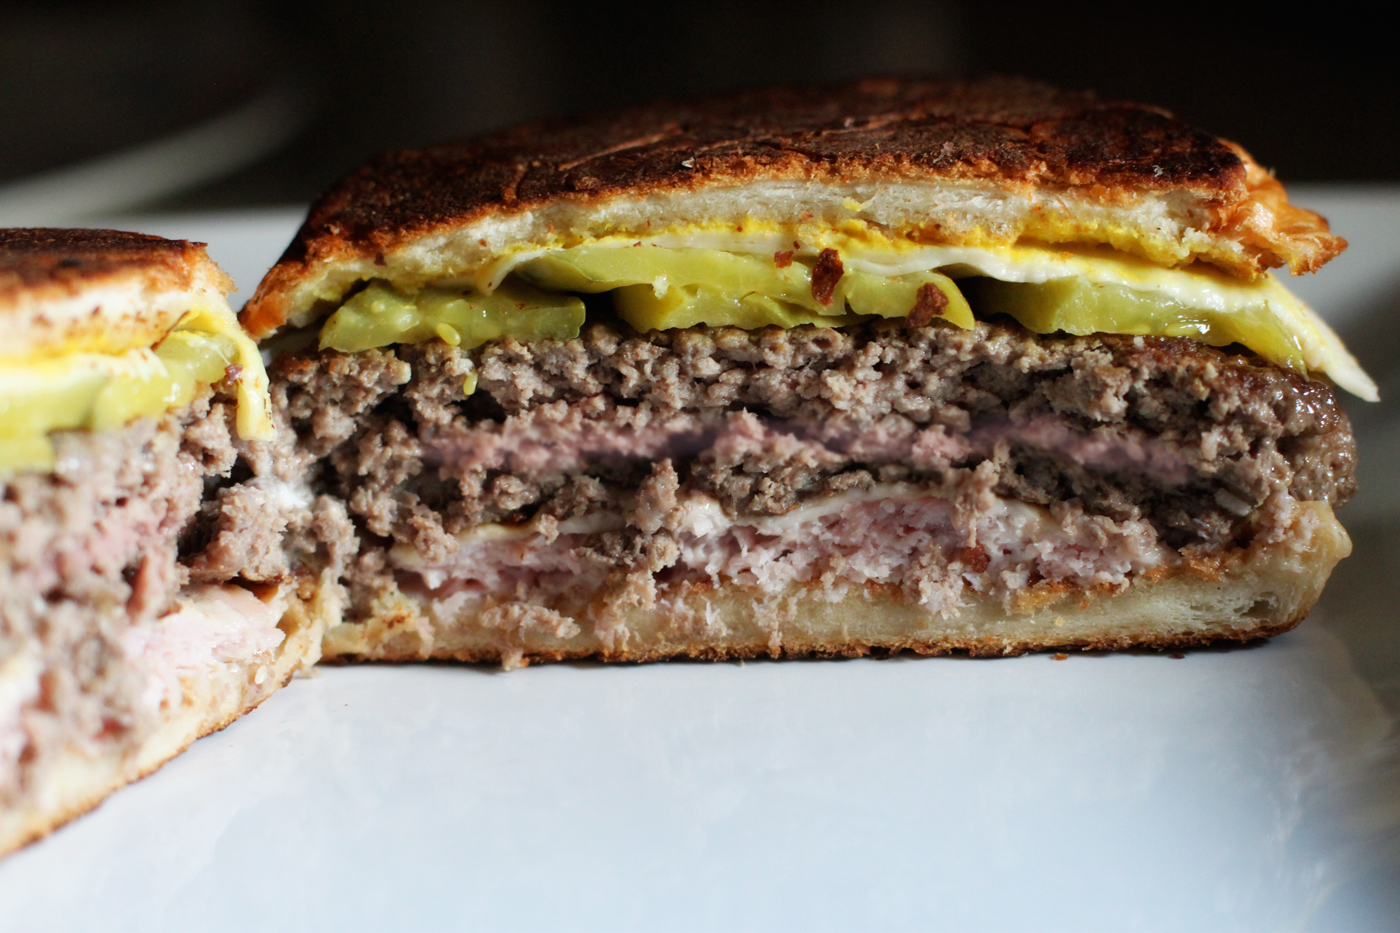 The Cuban Burger